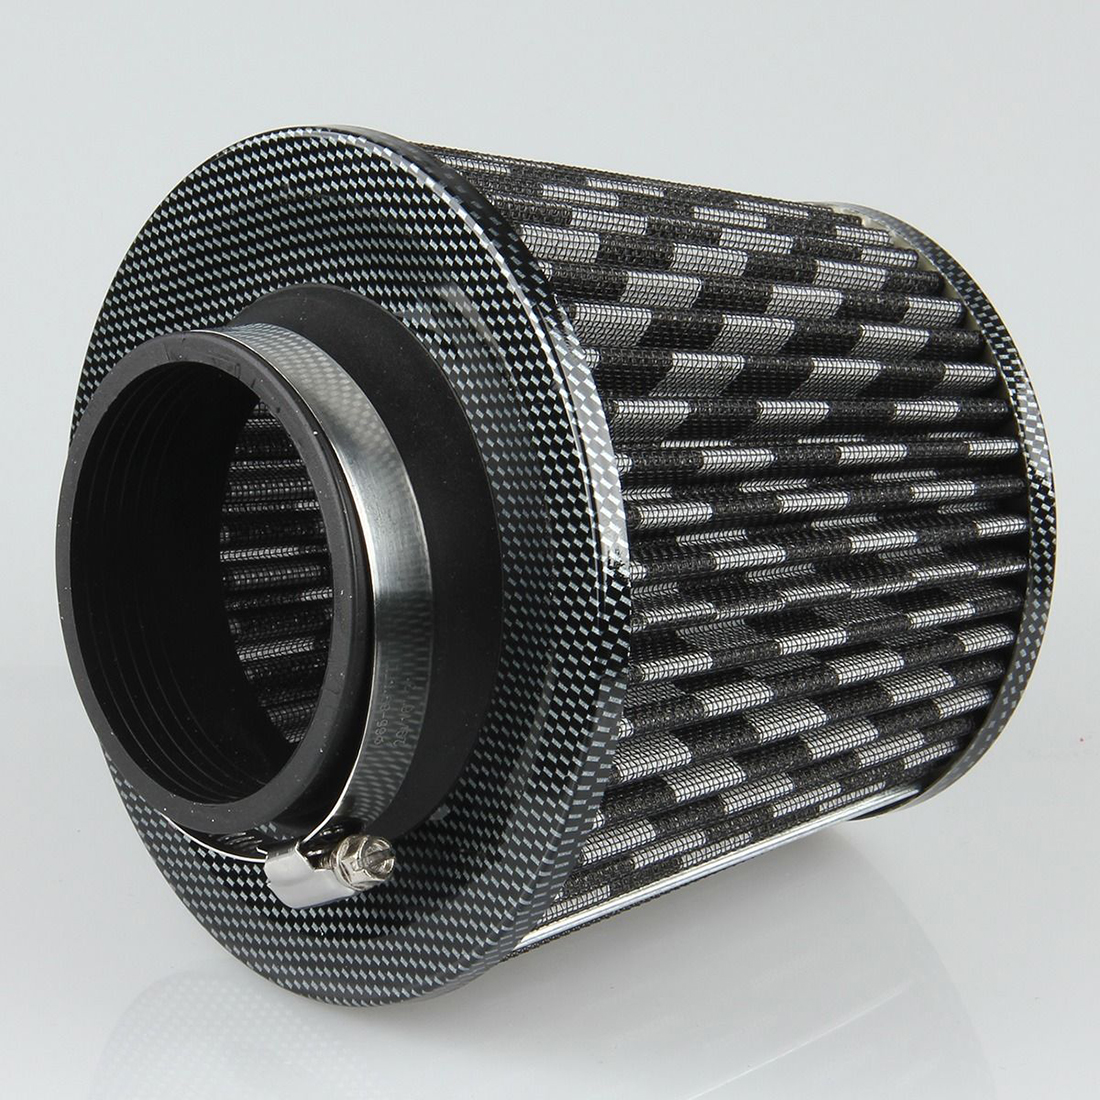 "Unique Bargains Vehicle Car Black White 76mm 3"" Inlet Dia Air Intake Round Filter - image 2 of 7"